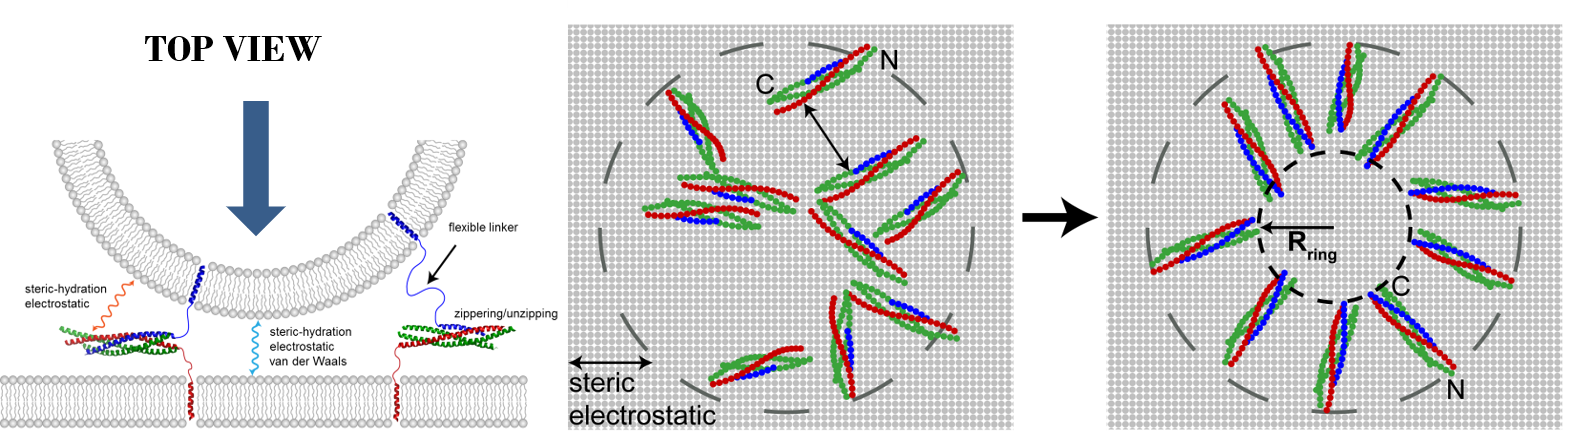 In simulations, SNARE complexes self-organize into circular clusters that exert entropic forces that push membranes together and catalyze their fusion.